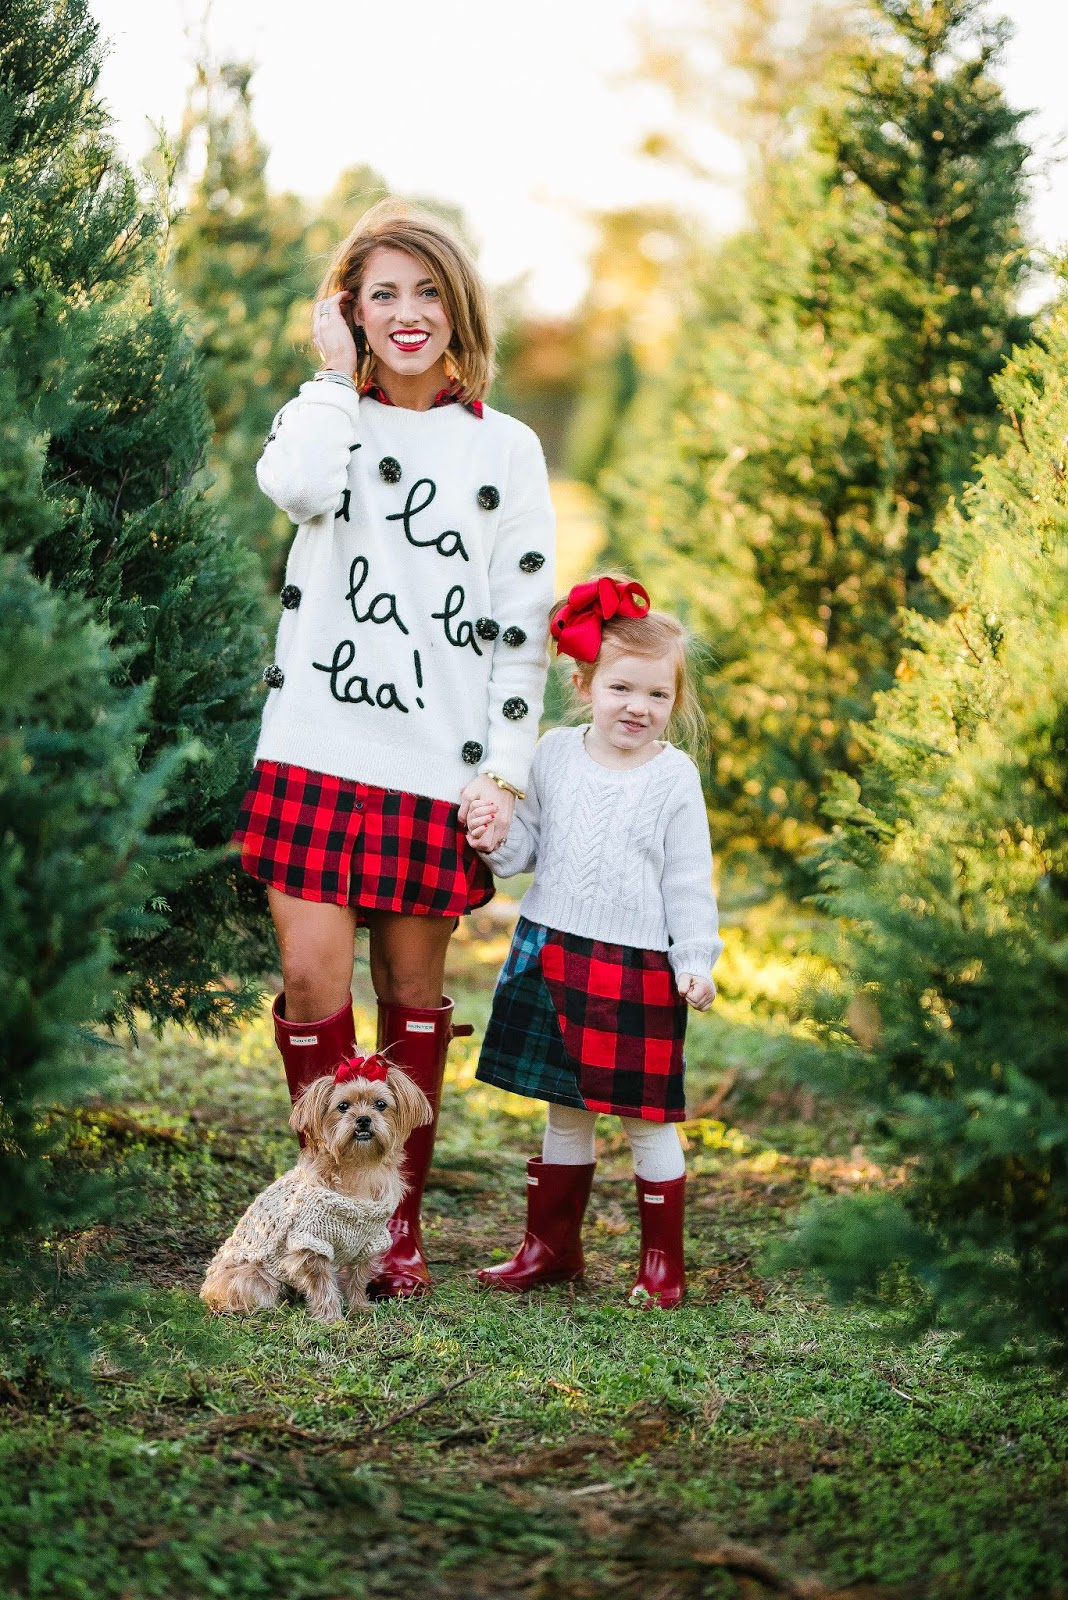 A Trip To The Tree Farm + Gift Guide for the Pet Lovers - Something Delightful Blog